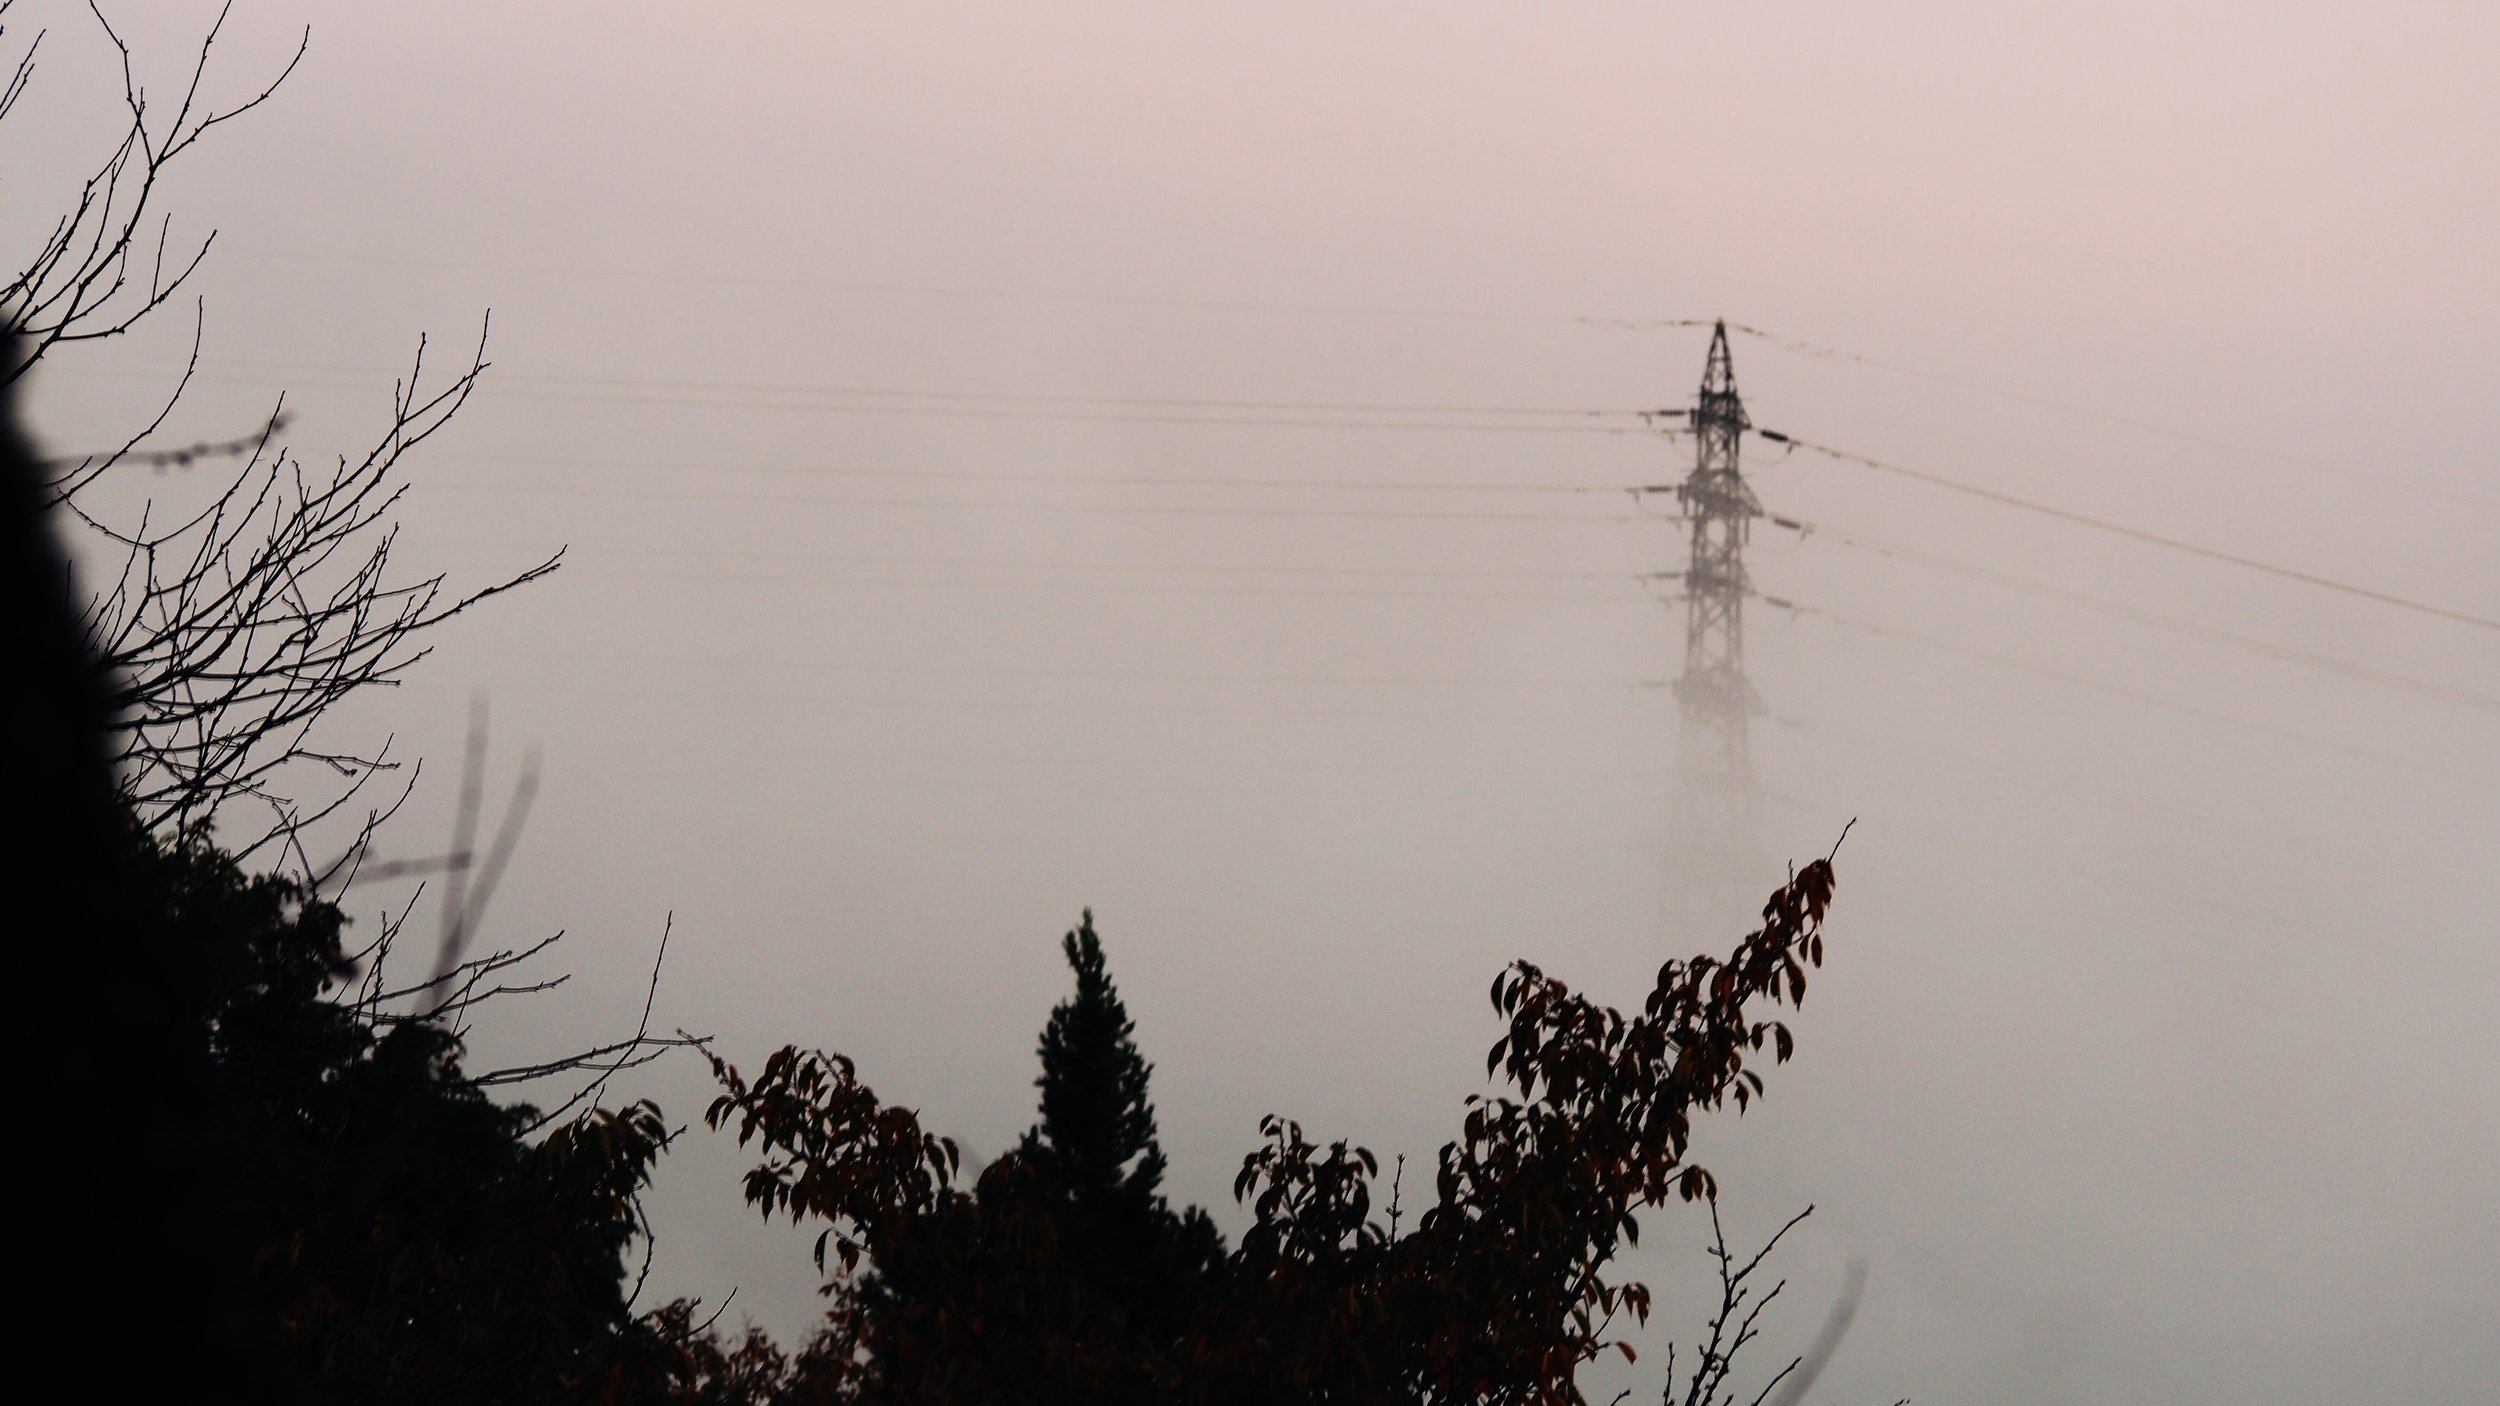 An electric pole peeking out through the morning mist